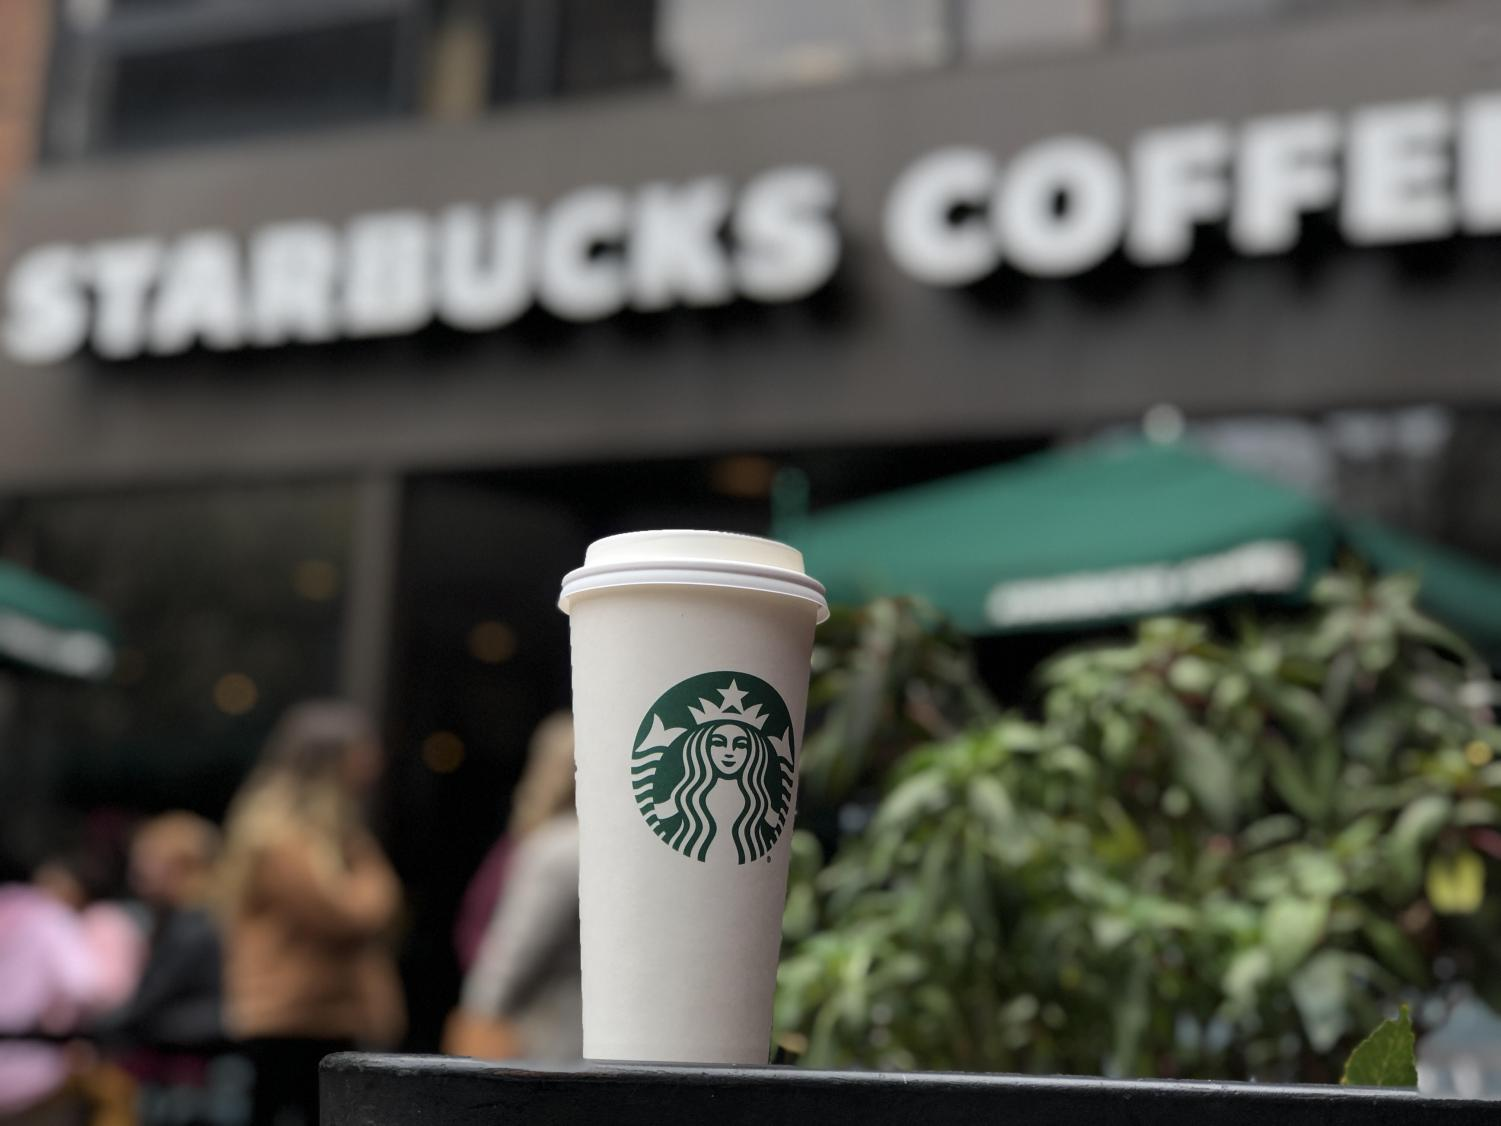 Starbucks, one of the biggest coffee house chains worldwide, is a place many depend on to help them get throughout their day.